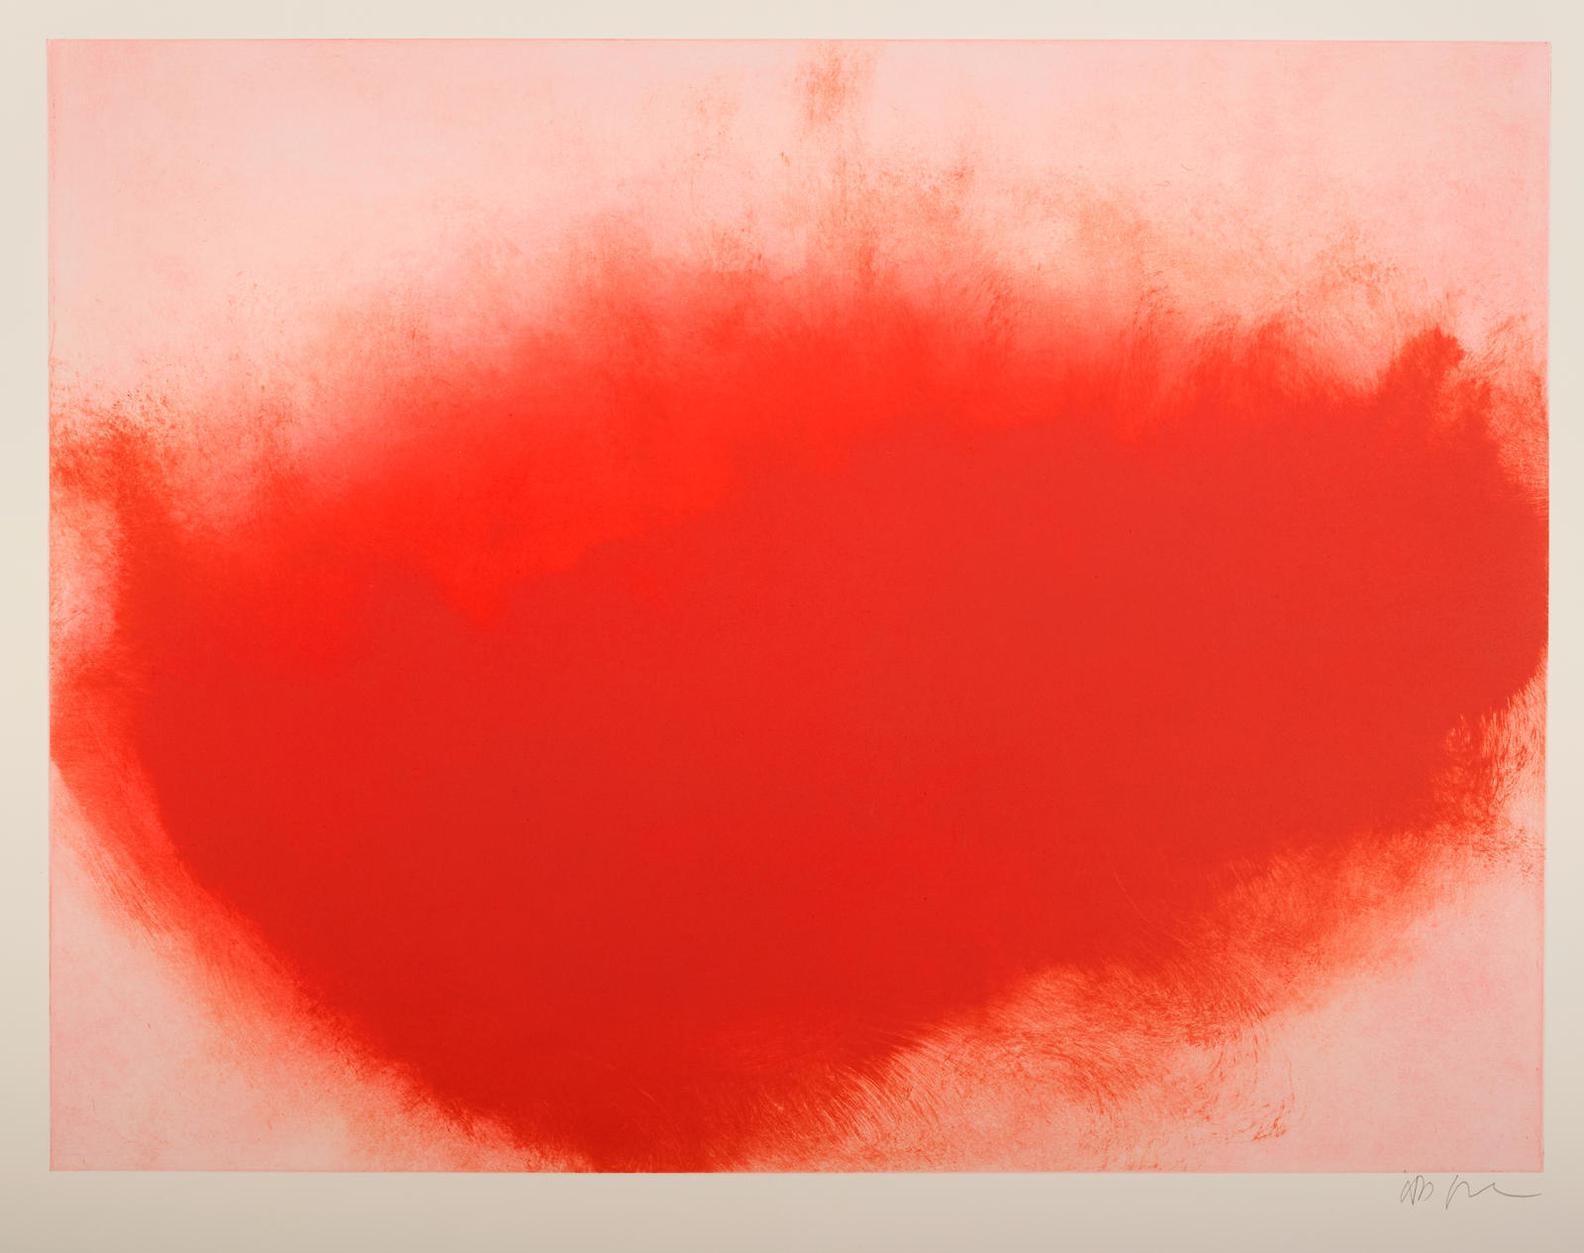 Anish Kapoor-Untitled 7, From 12 Etchings-2007